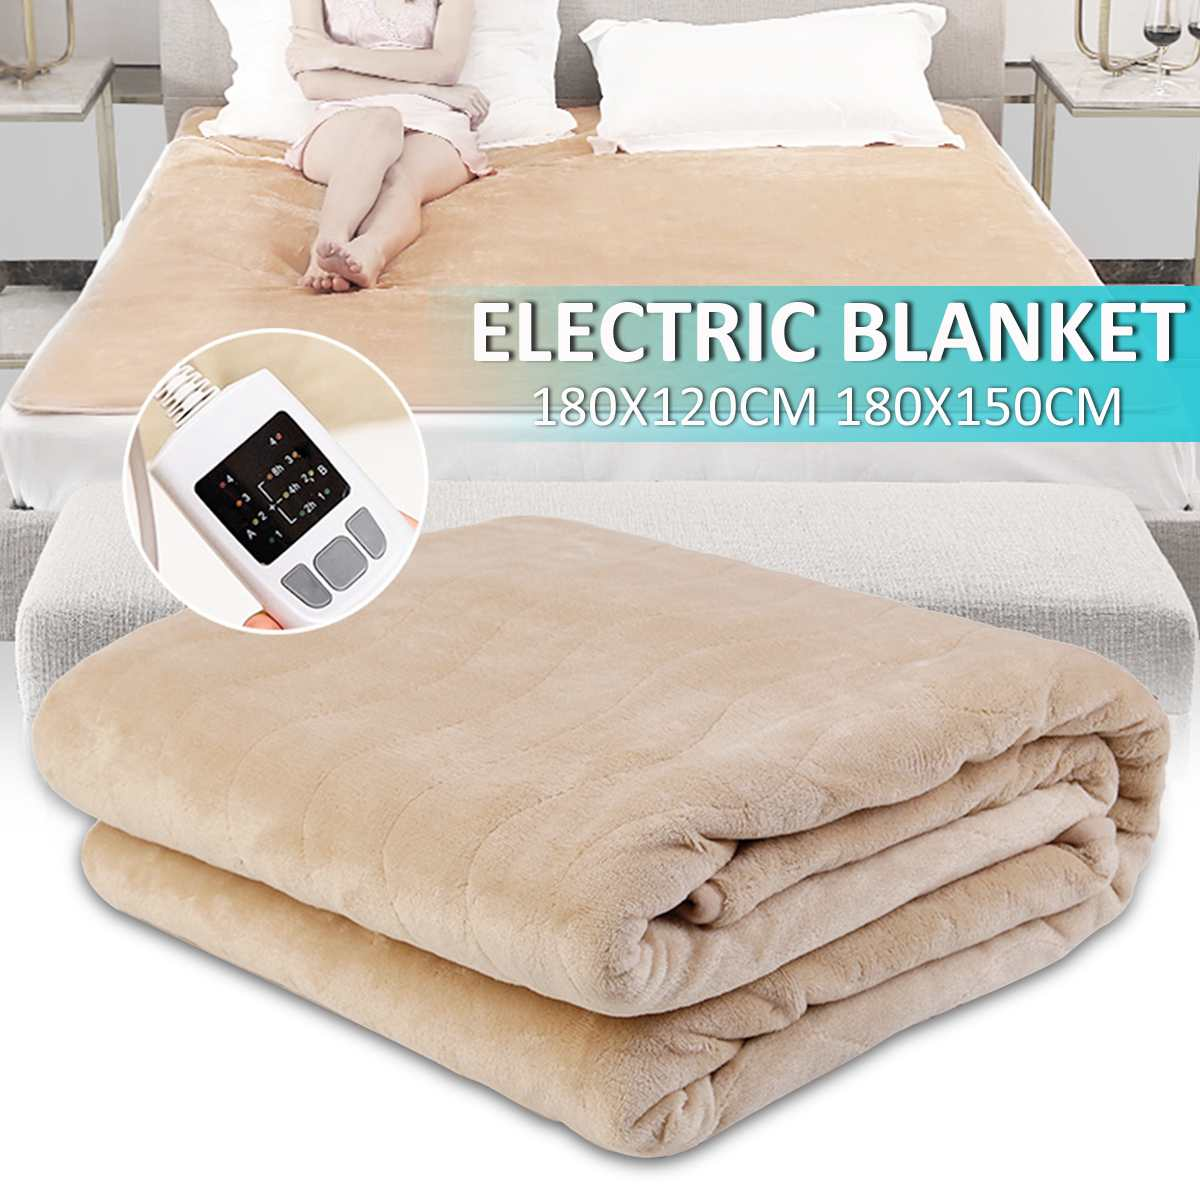 180cm Waterproof Electric Flannel Blanket Dual Heating Double Body Warmer Bed Heated Pad Winter Mattress Carpet W/Remote Control